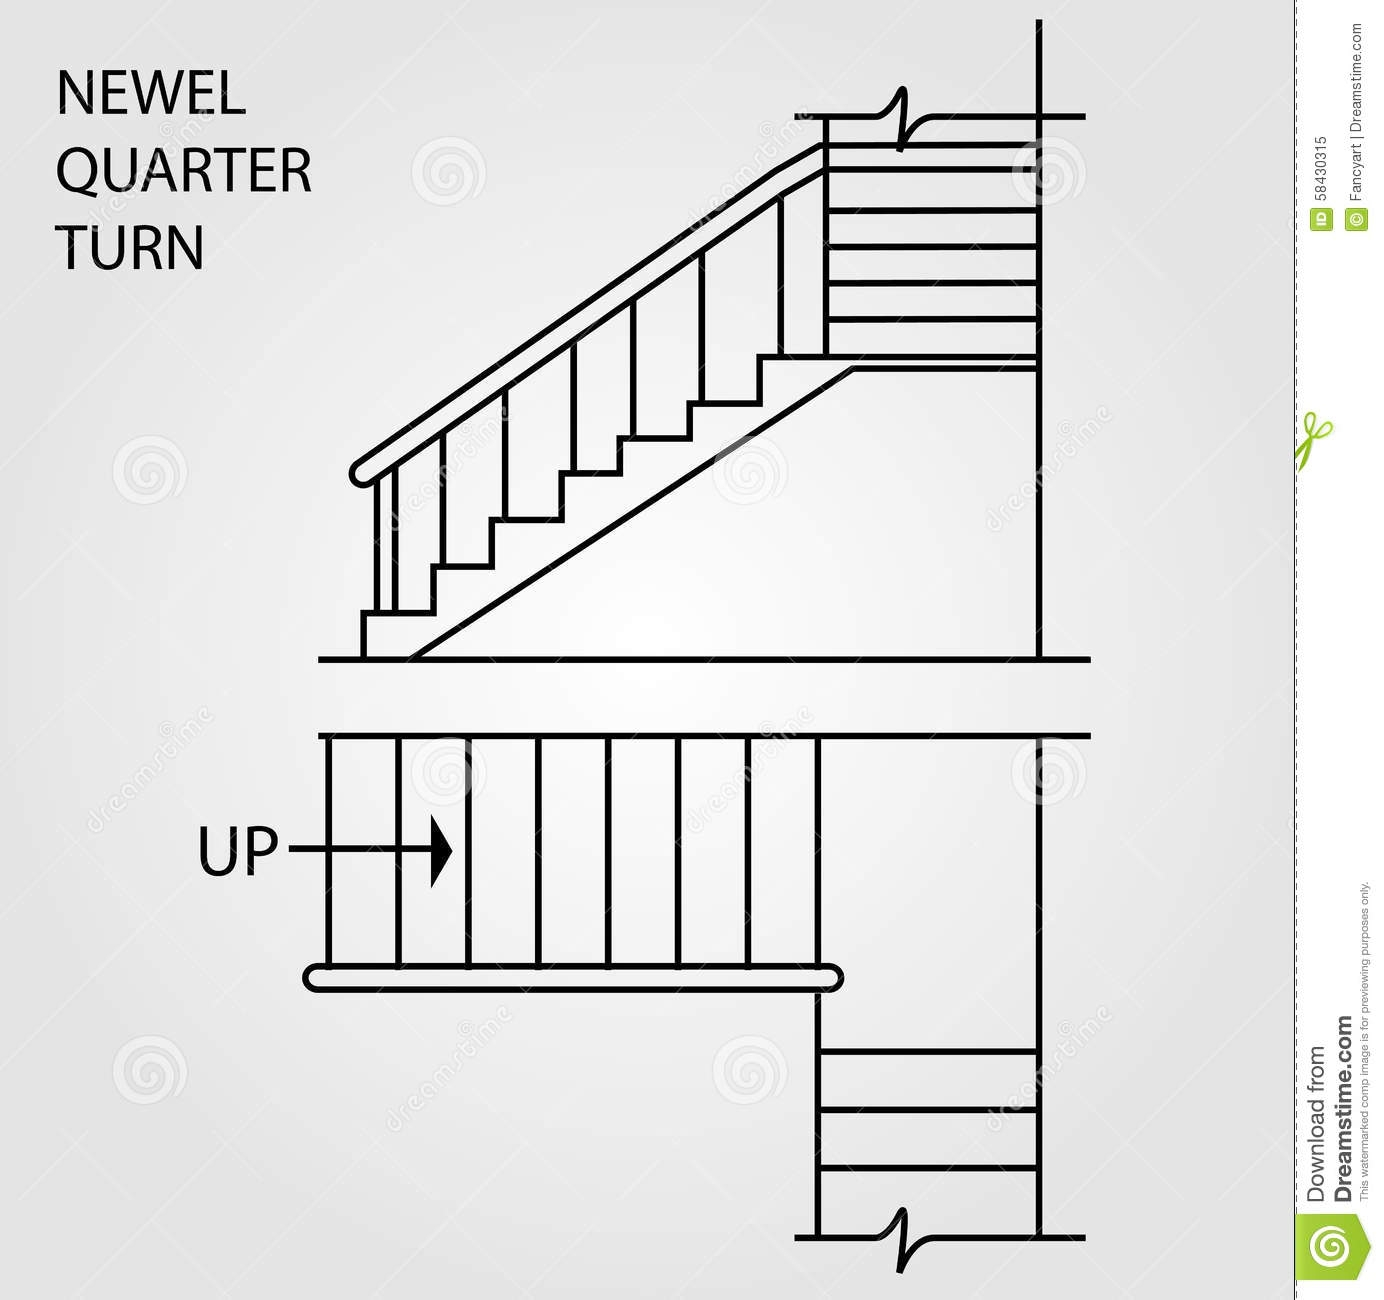 A Newel Quarter Turn Staircase Stock Vector Illustration Of   Quarter Turn Staircase Design   Winder Staircase   Oak   Turning   Oval Shaped   Modern